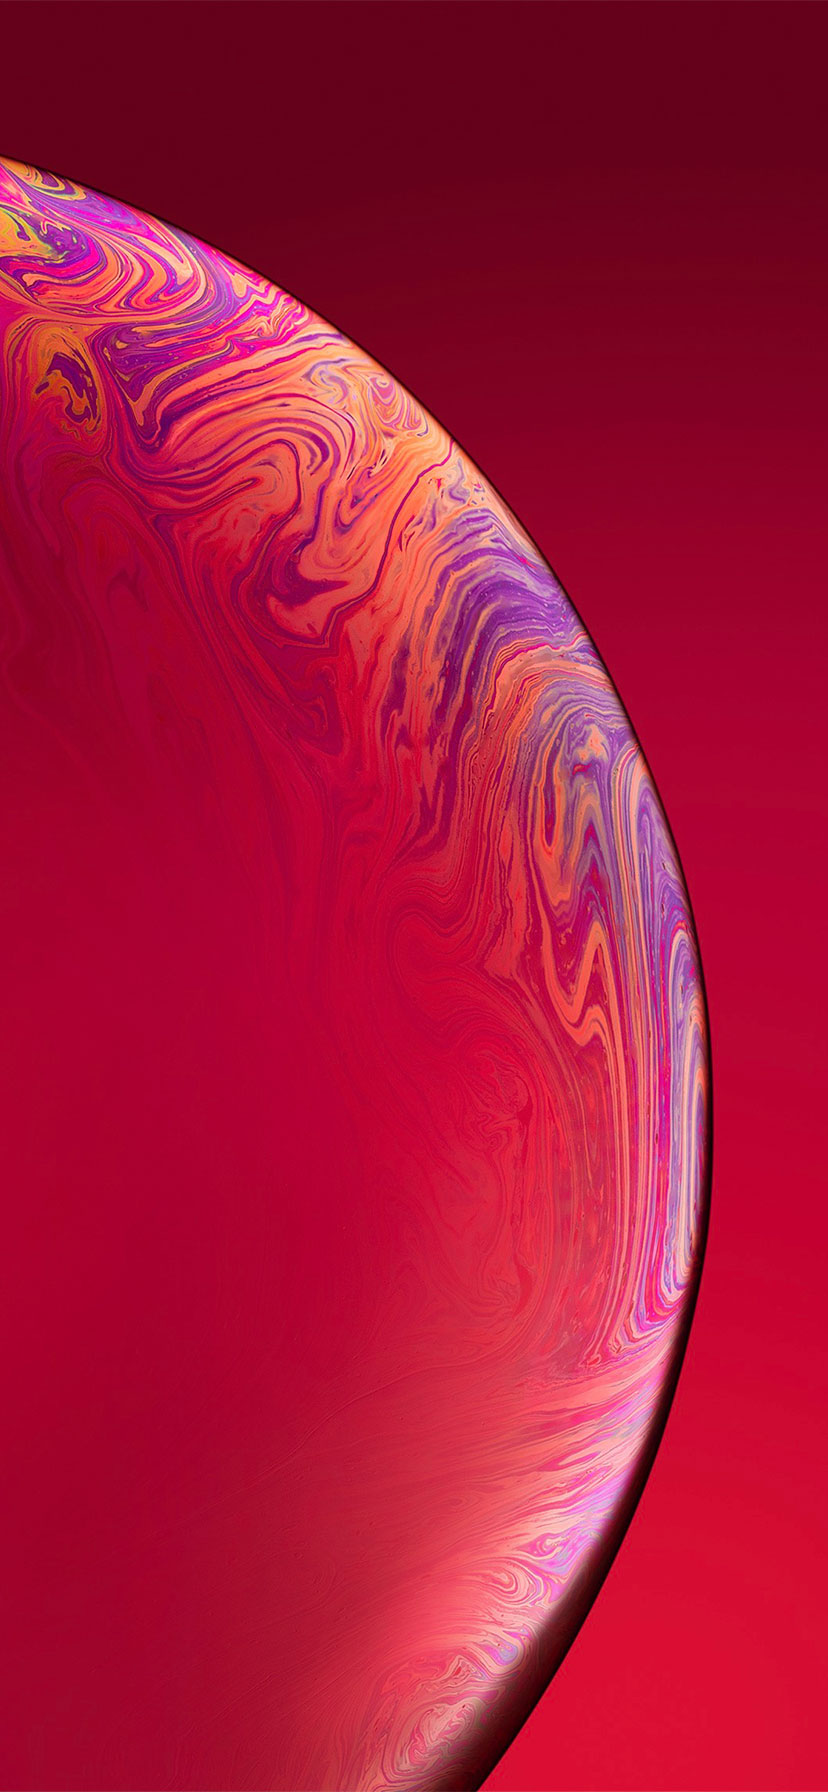 Free Download 50 Best High Quality Iphone Xr Wallpapers